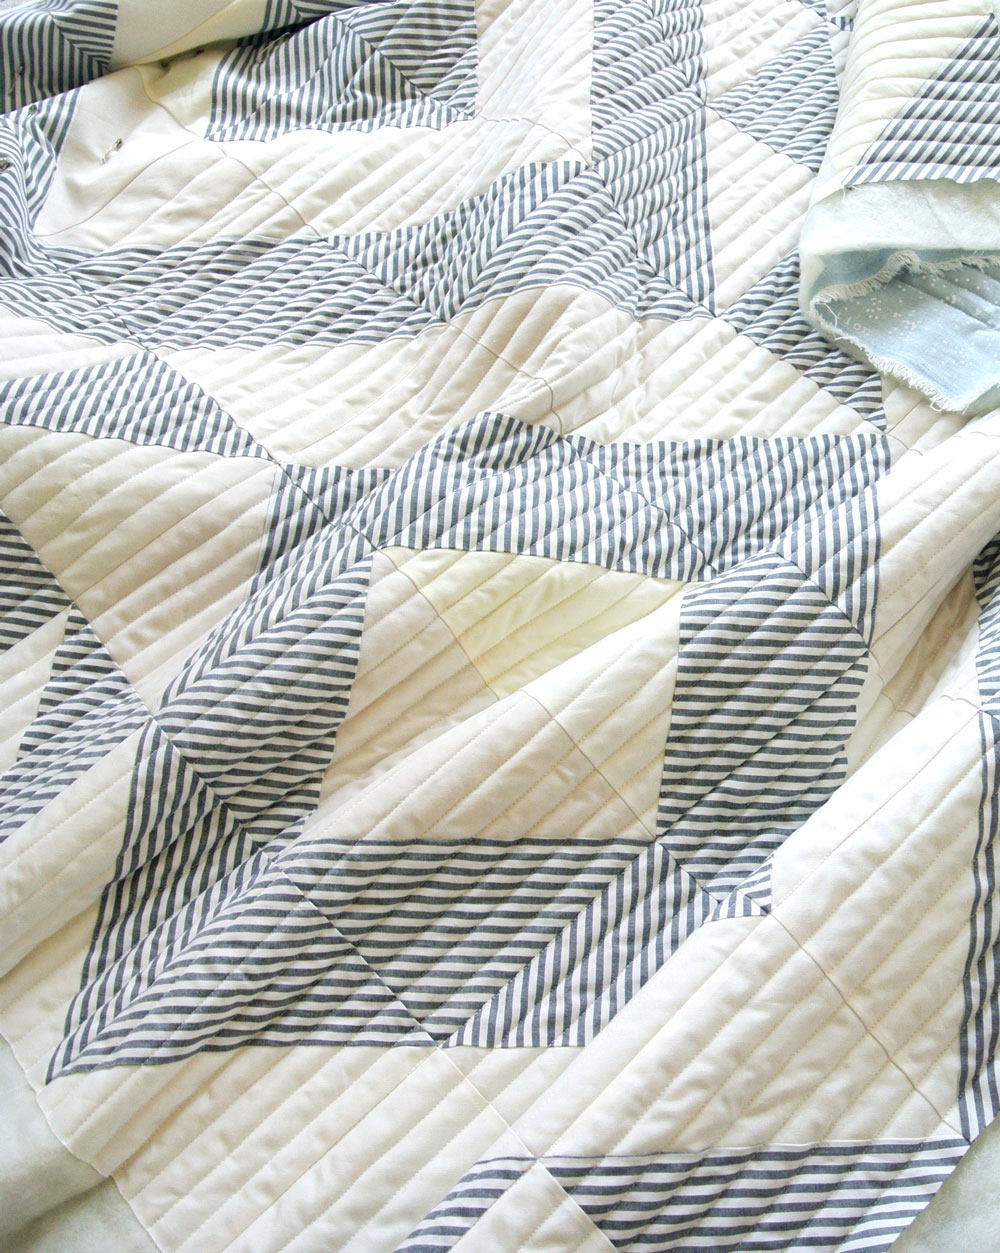 The straight line quilting on this Triangle Jitters quilt shows what fabric looks like before it is prewashed